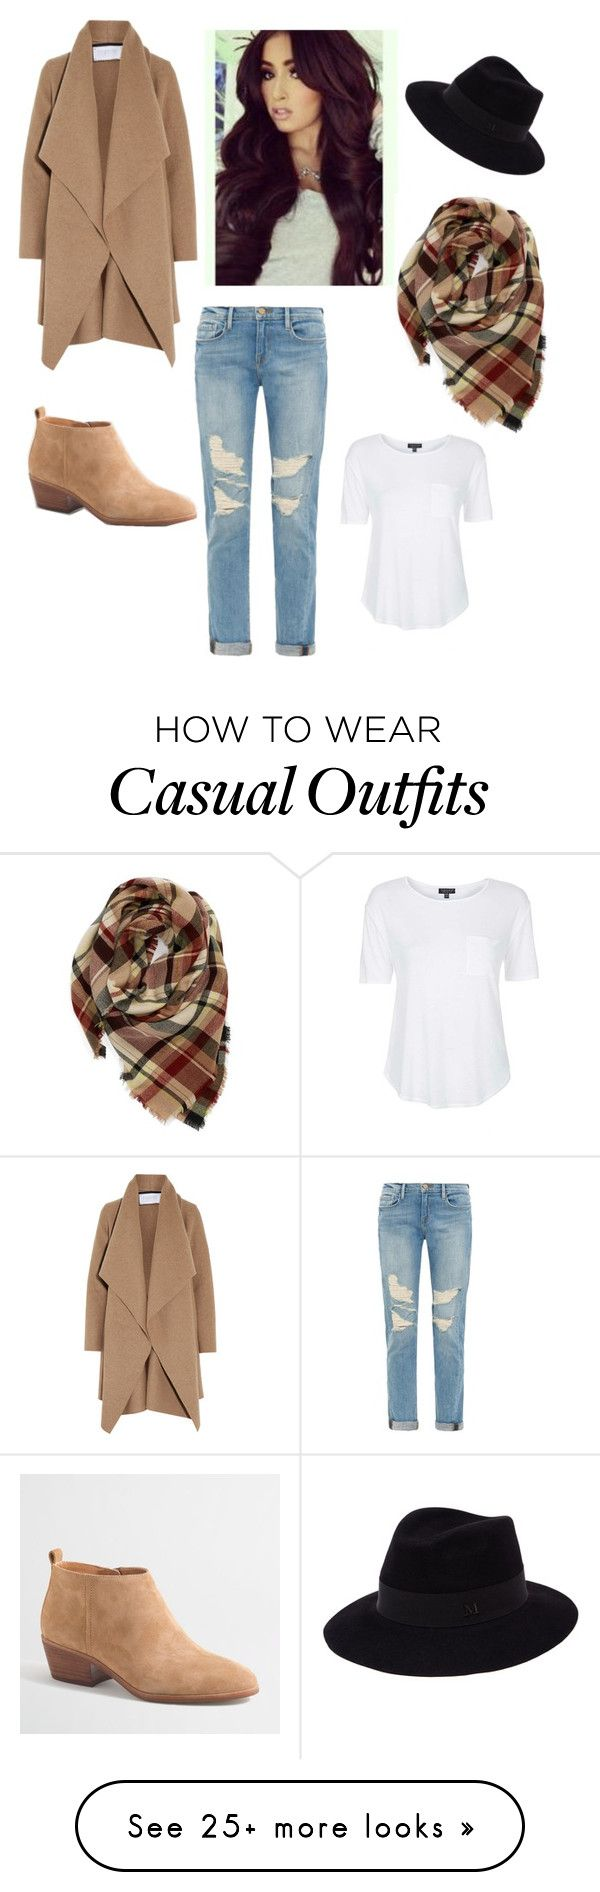 """ugraded casual"" by starr-tiffany on Polyvore featuring Frame Denim, Harris Wharf London, J.Crew, Maison Michel, Evelyn K and Topshop"